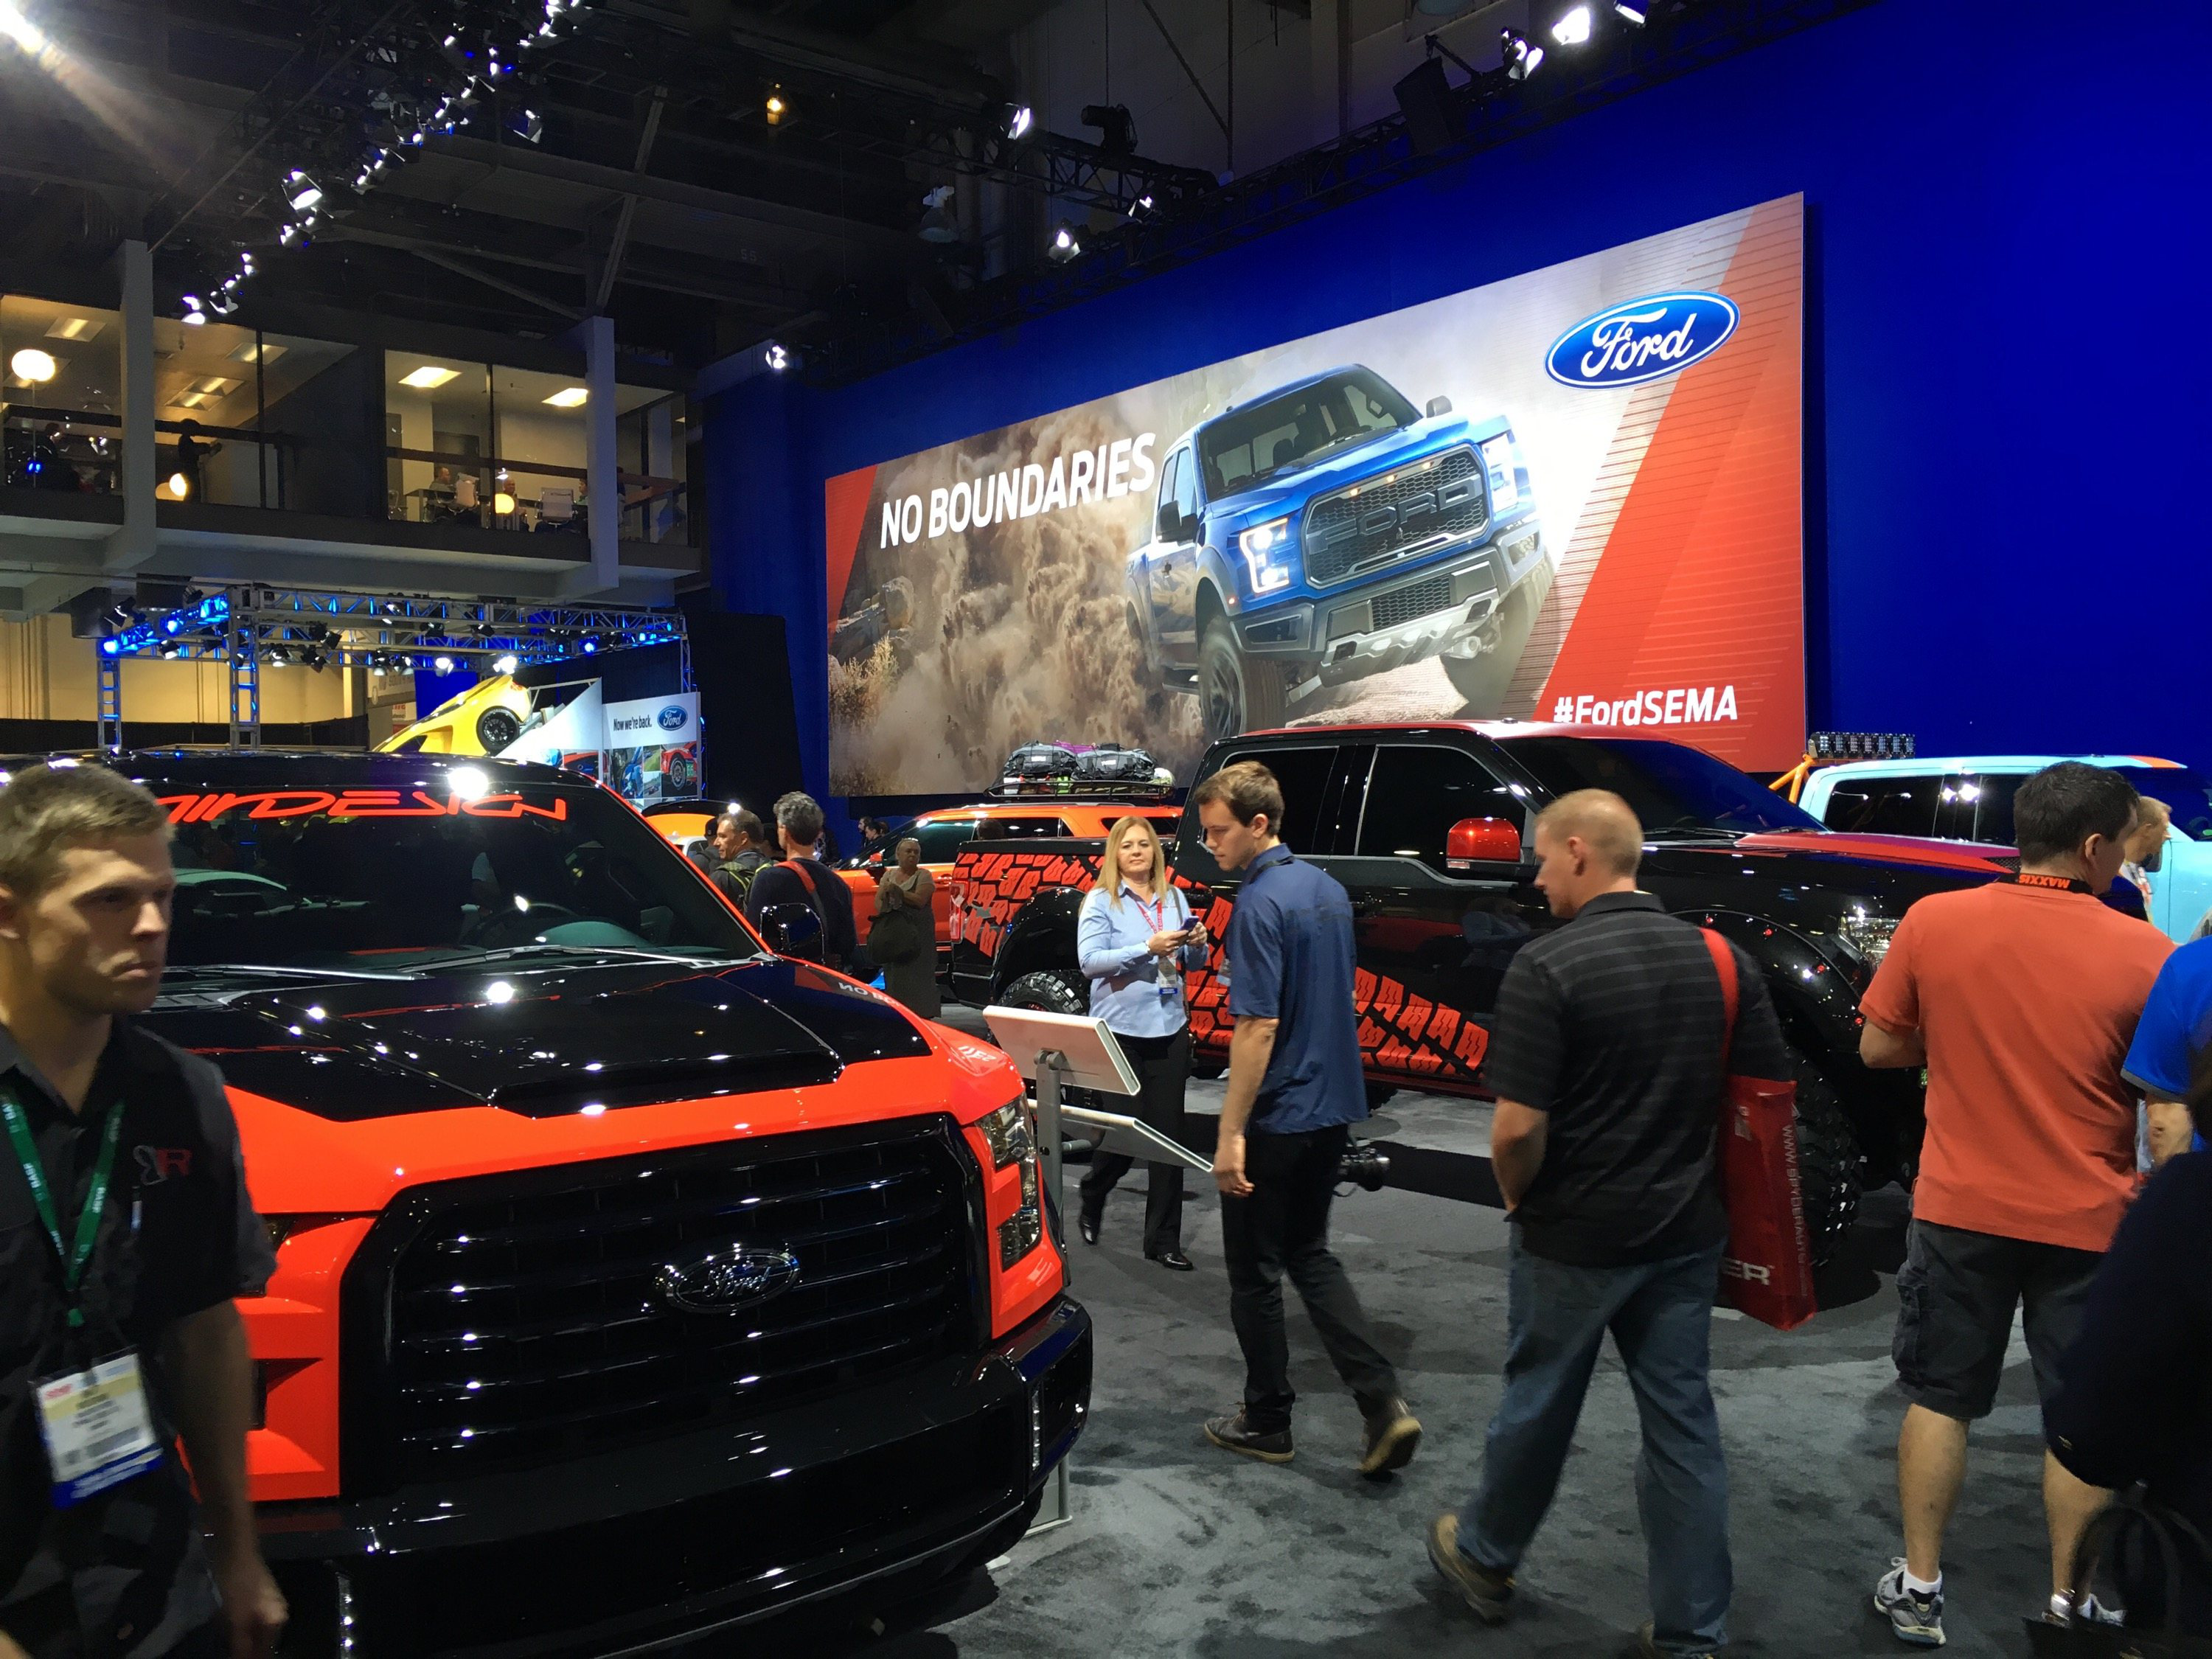 ford f series crowned hottest truck at sema show. Black Bedroom Furniture Sets. Home Design Ideas